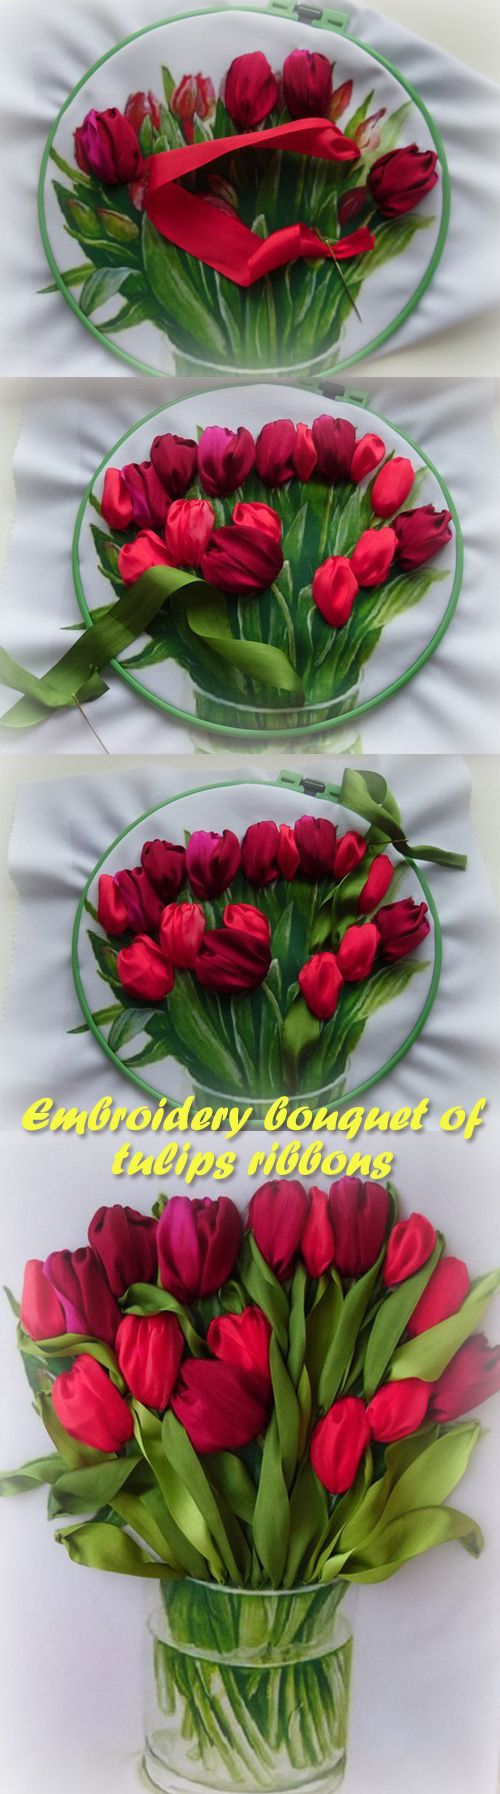 Embroidery bouquet of tulips ribbons silk ribbon